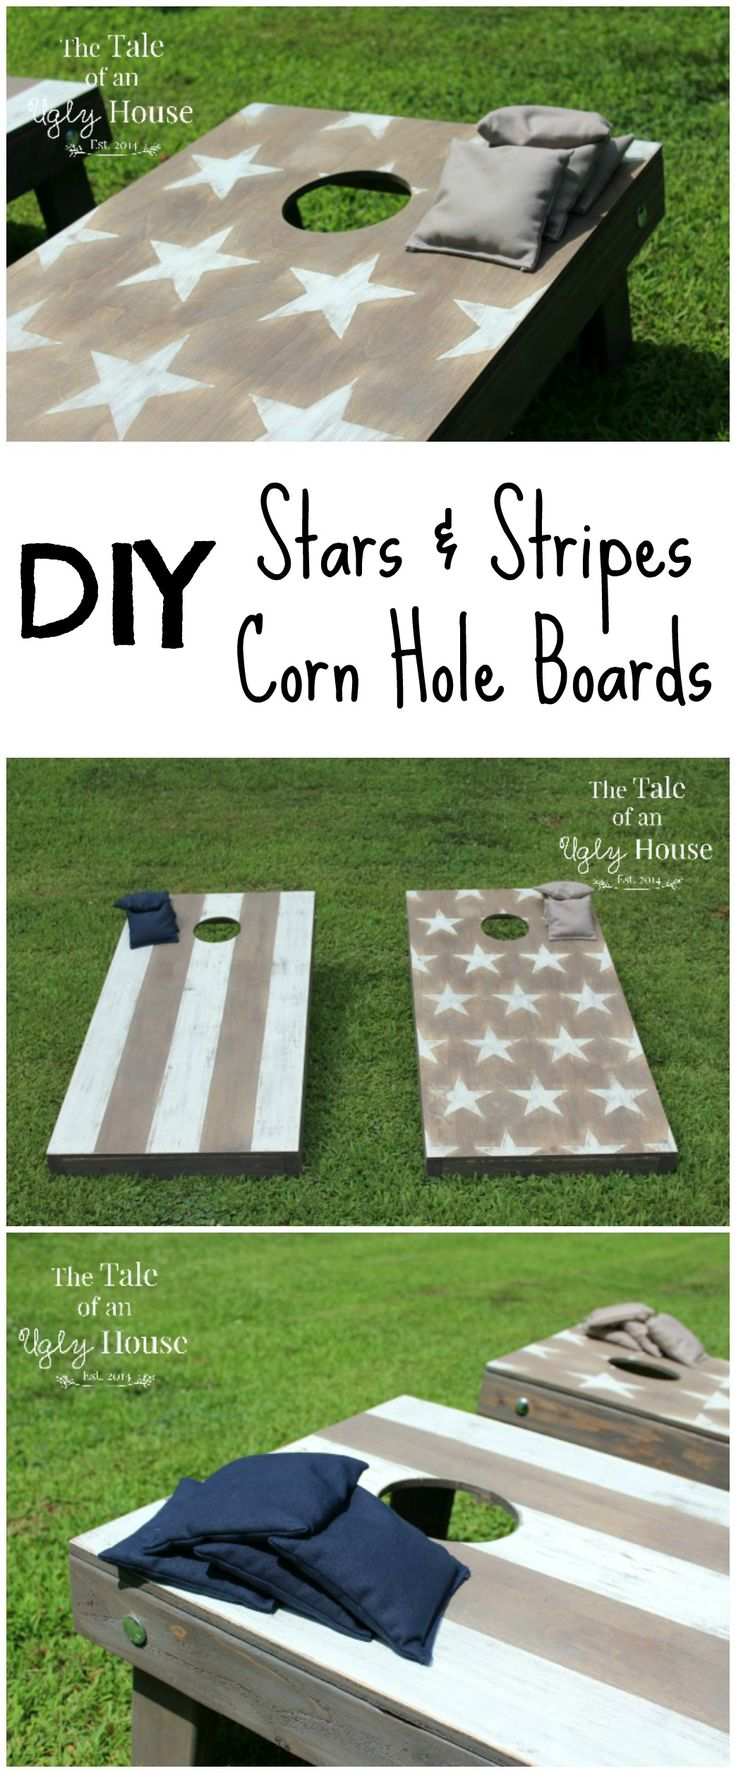 Stars & Stripes Corn Hole boards